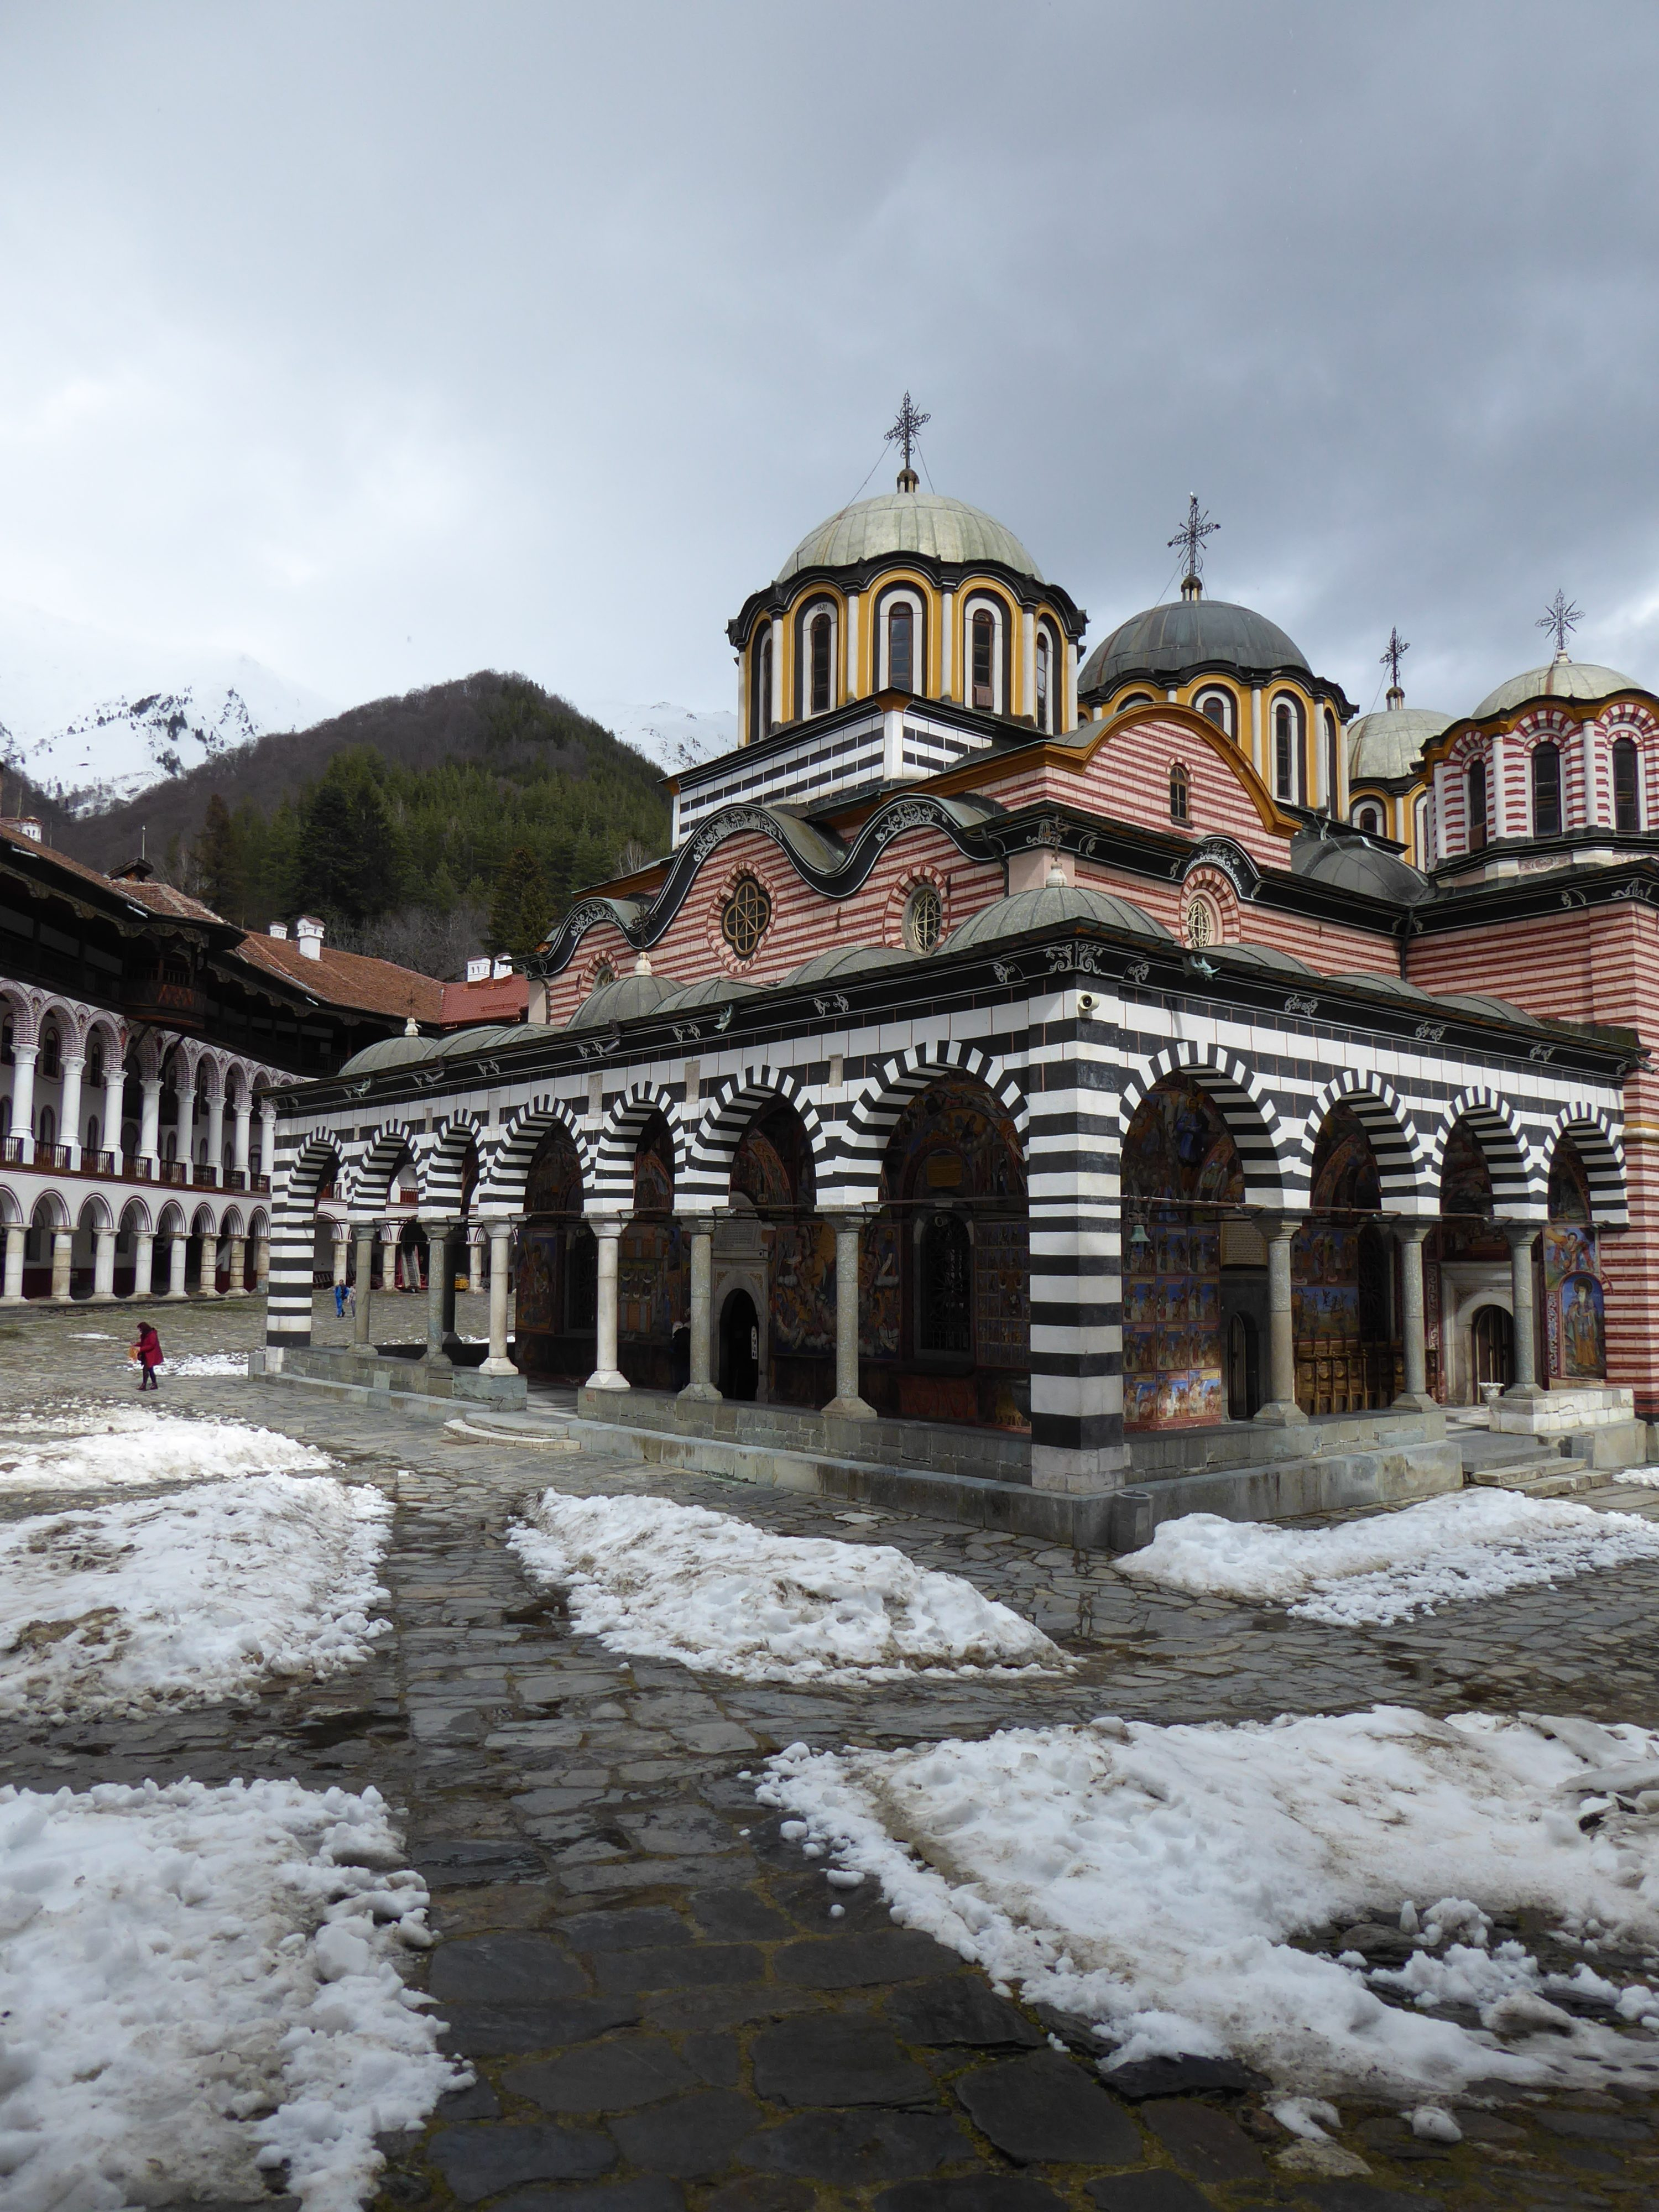 View inside Rila Monastery, buildings, mountain in distance, snow still on gorund 2 hours from Sofia, Bulgaria